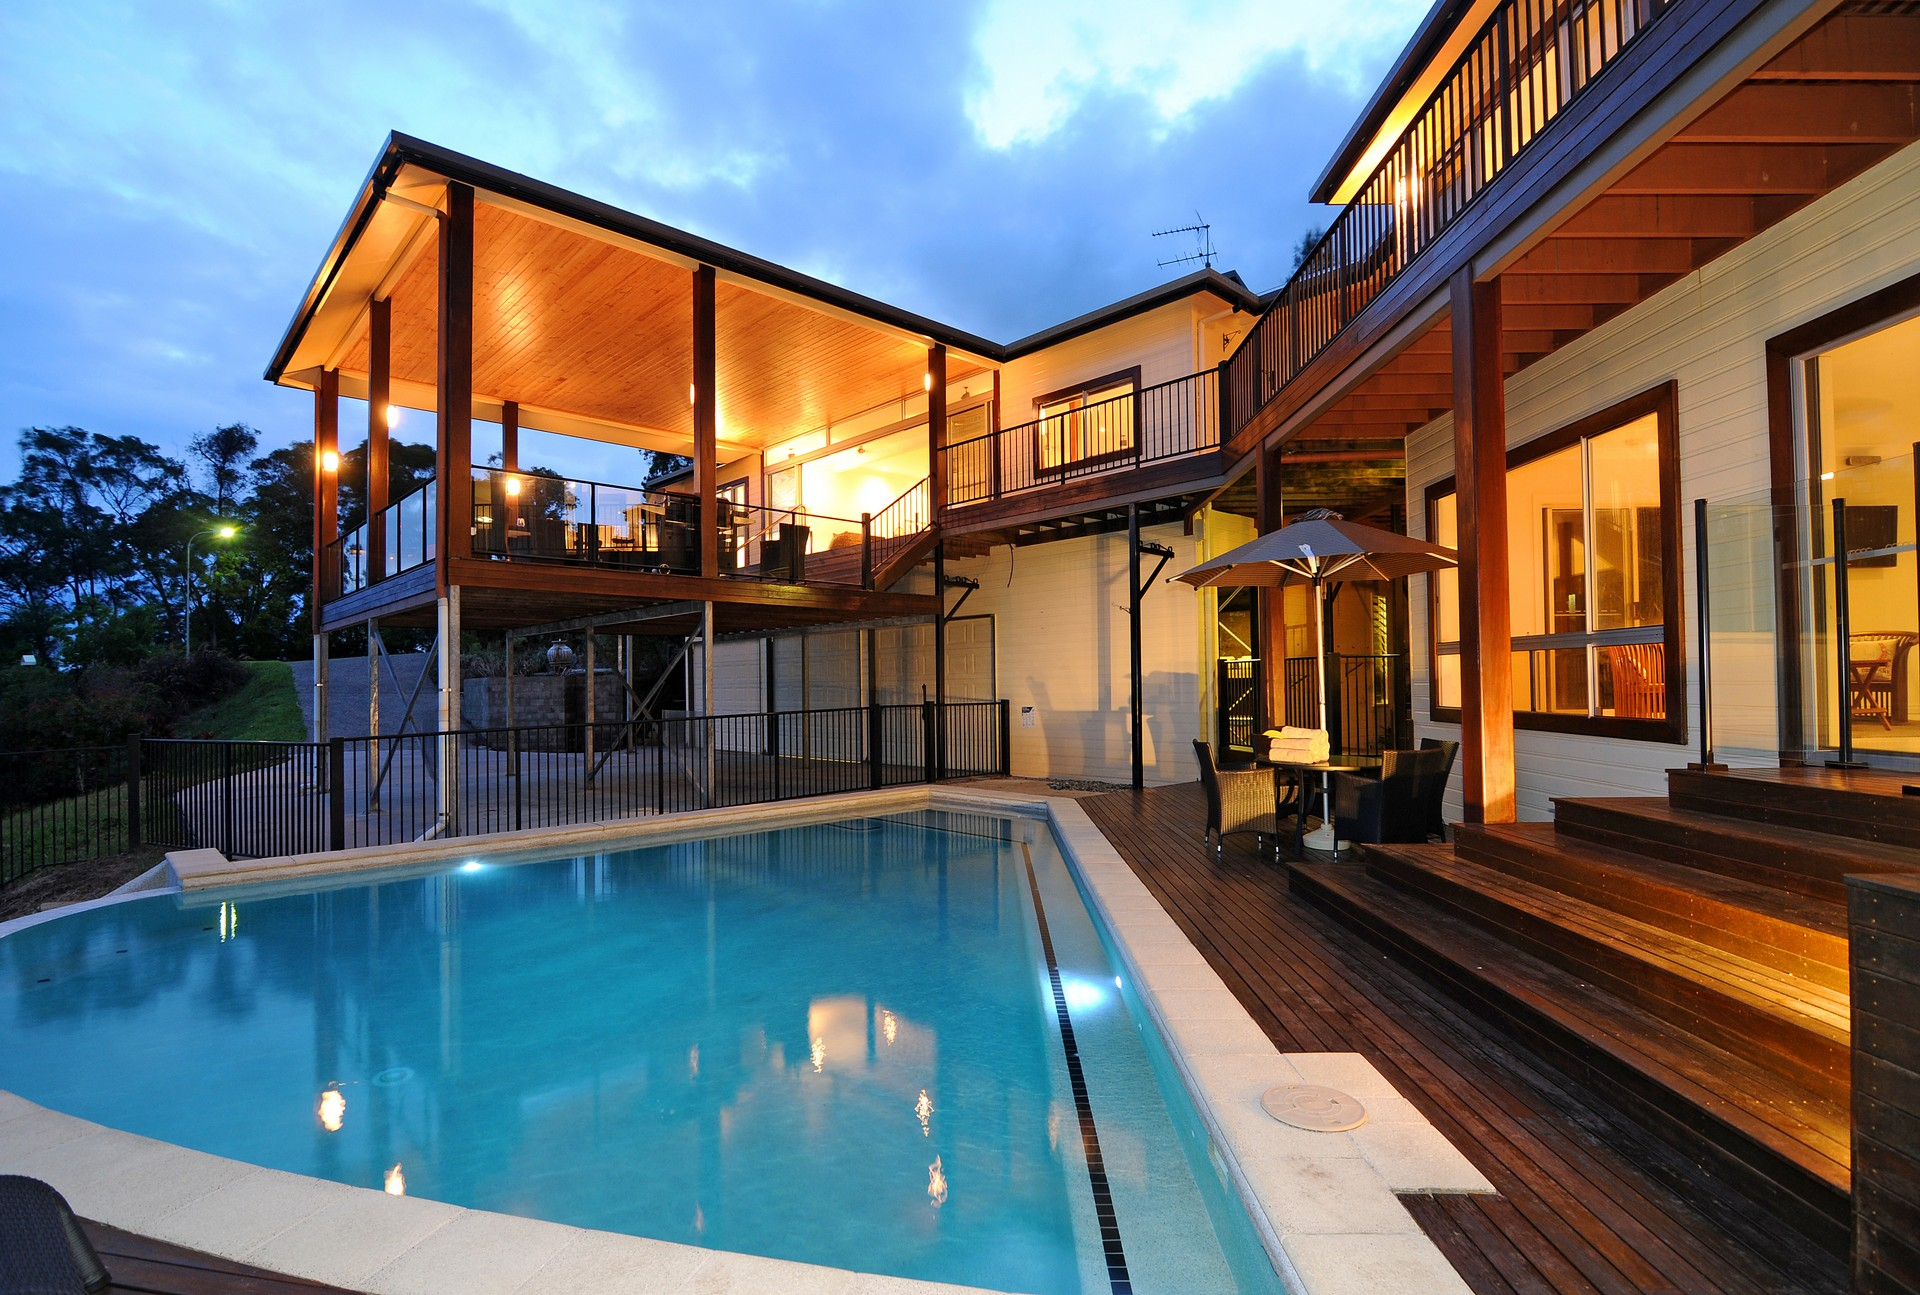 Investment property port douglas small investment business ideas in karachi pakistan